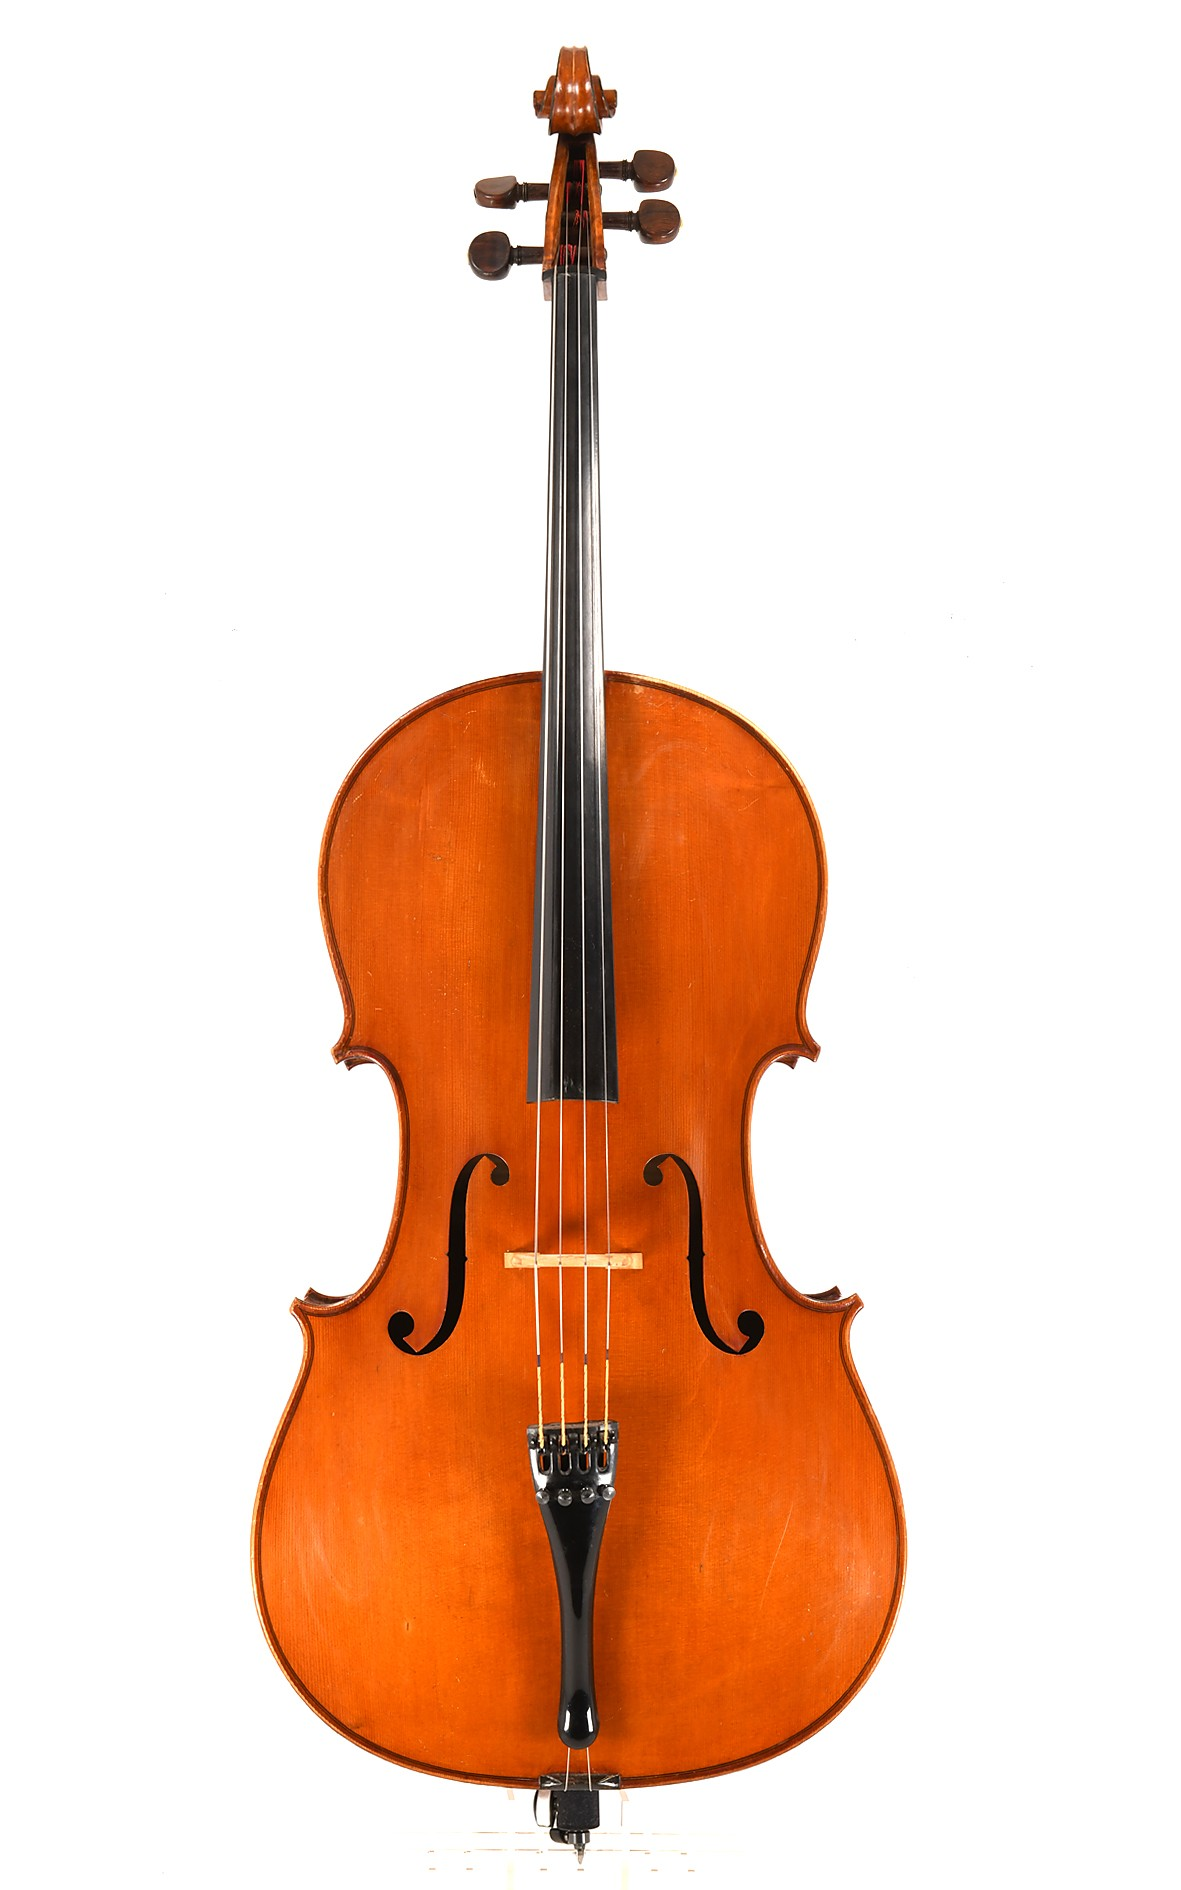 Feines Cello von Collin-Mézin fils, Mirecourt